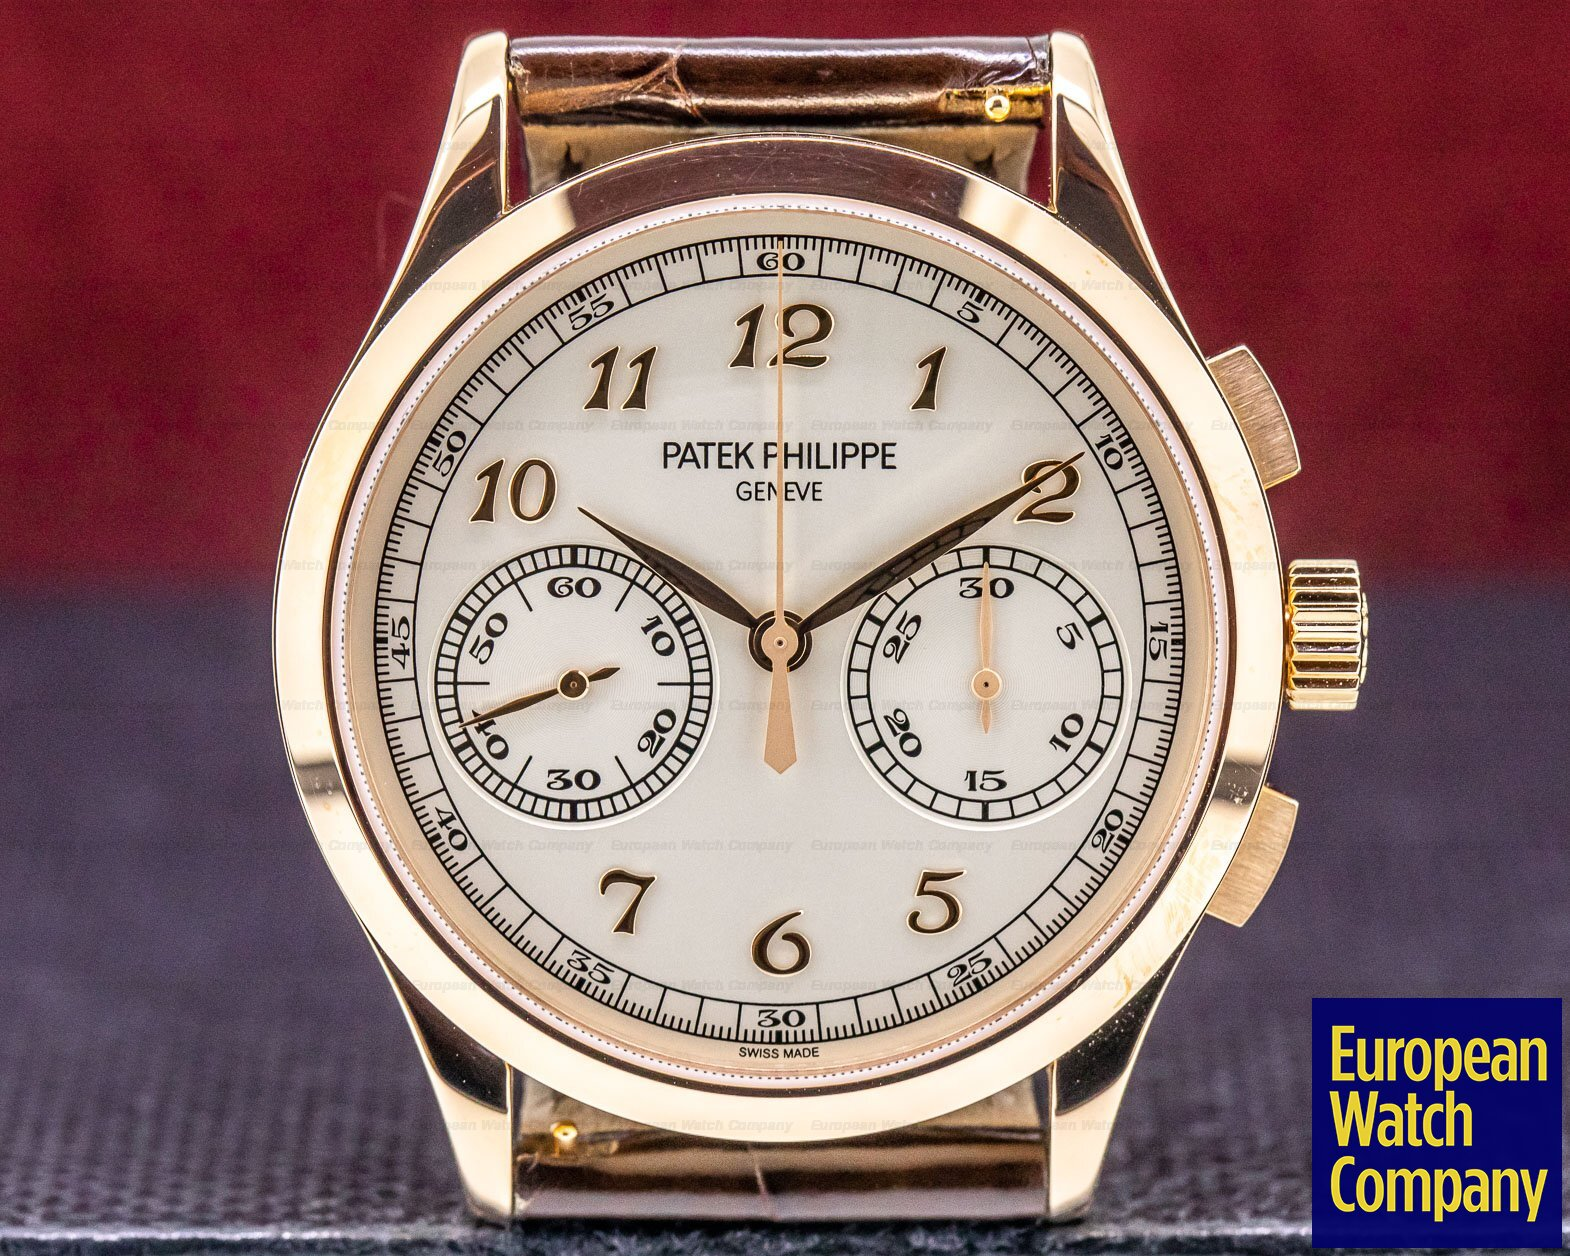 Patek Philippe 5170R-001 Chronograph 18K Rose Gold Silver Dial